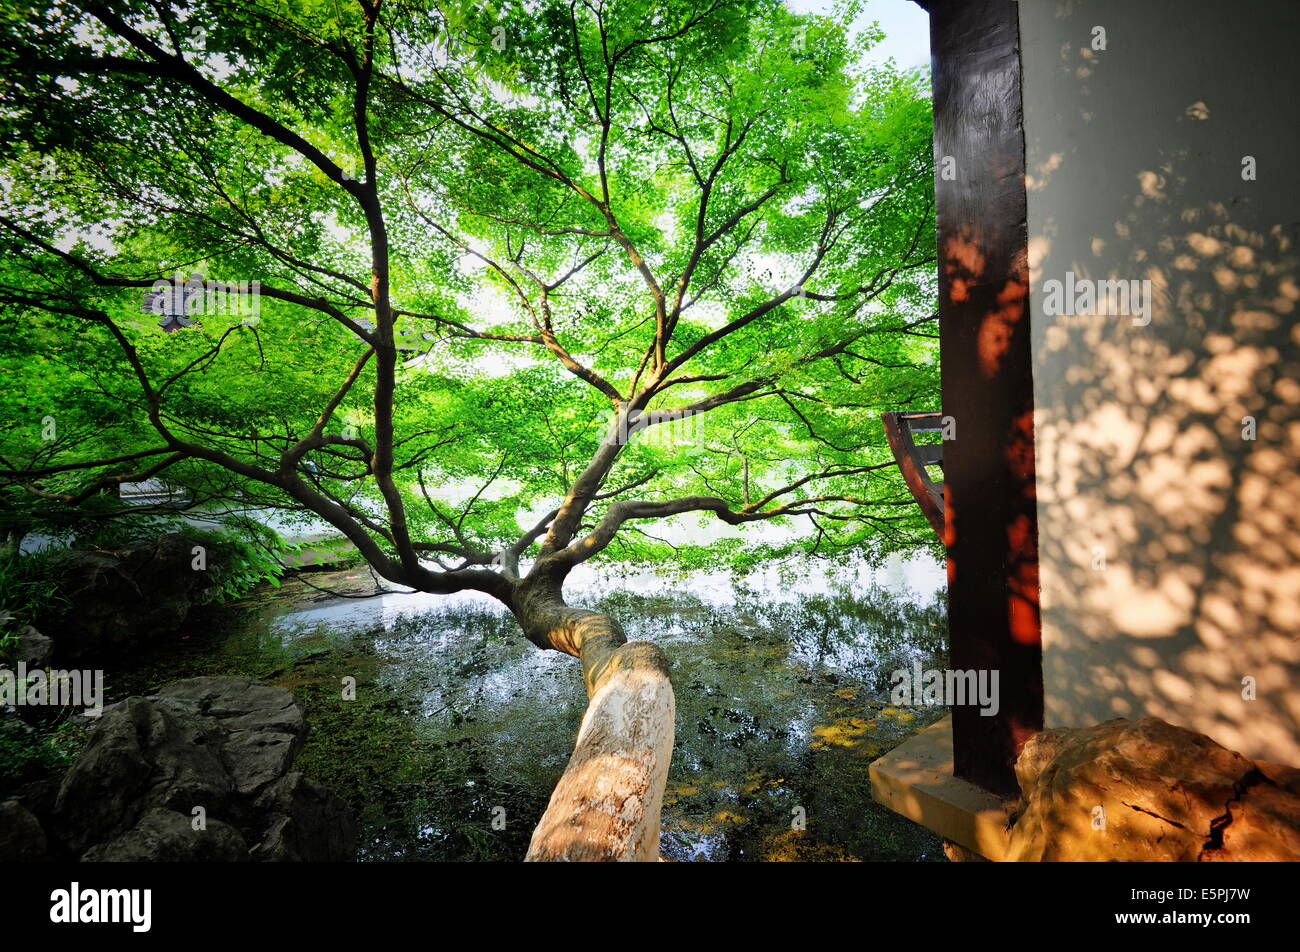 Tree reaching out into one of the many lakes in a park at West Lake, Hangzhou, Zhejiang, China, Asia - Stock Image